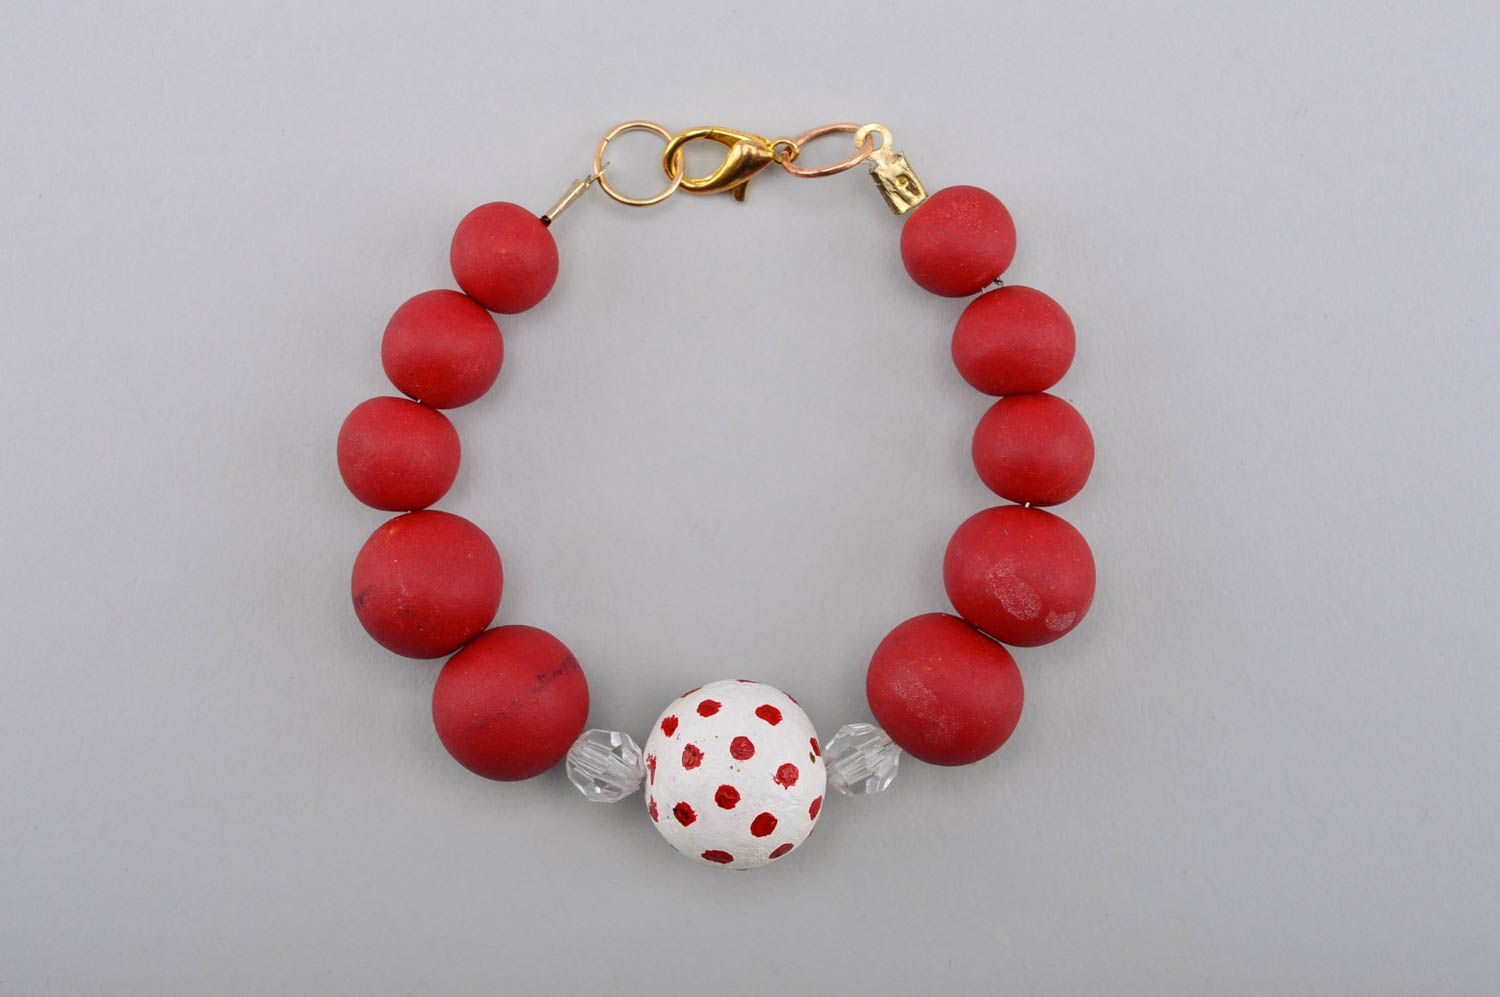 Handmade beautiful bracelet plastic red bracelet stylish wrist accessory photo 5